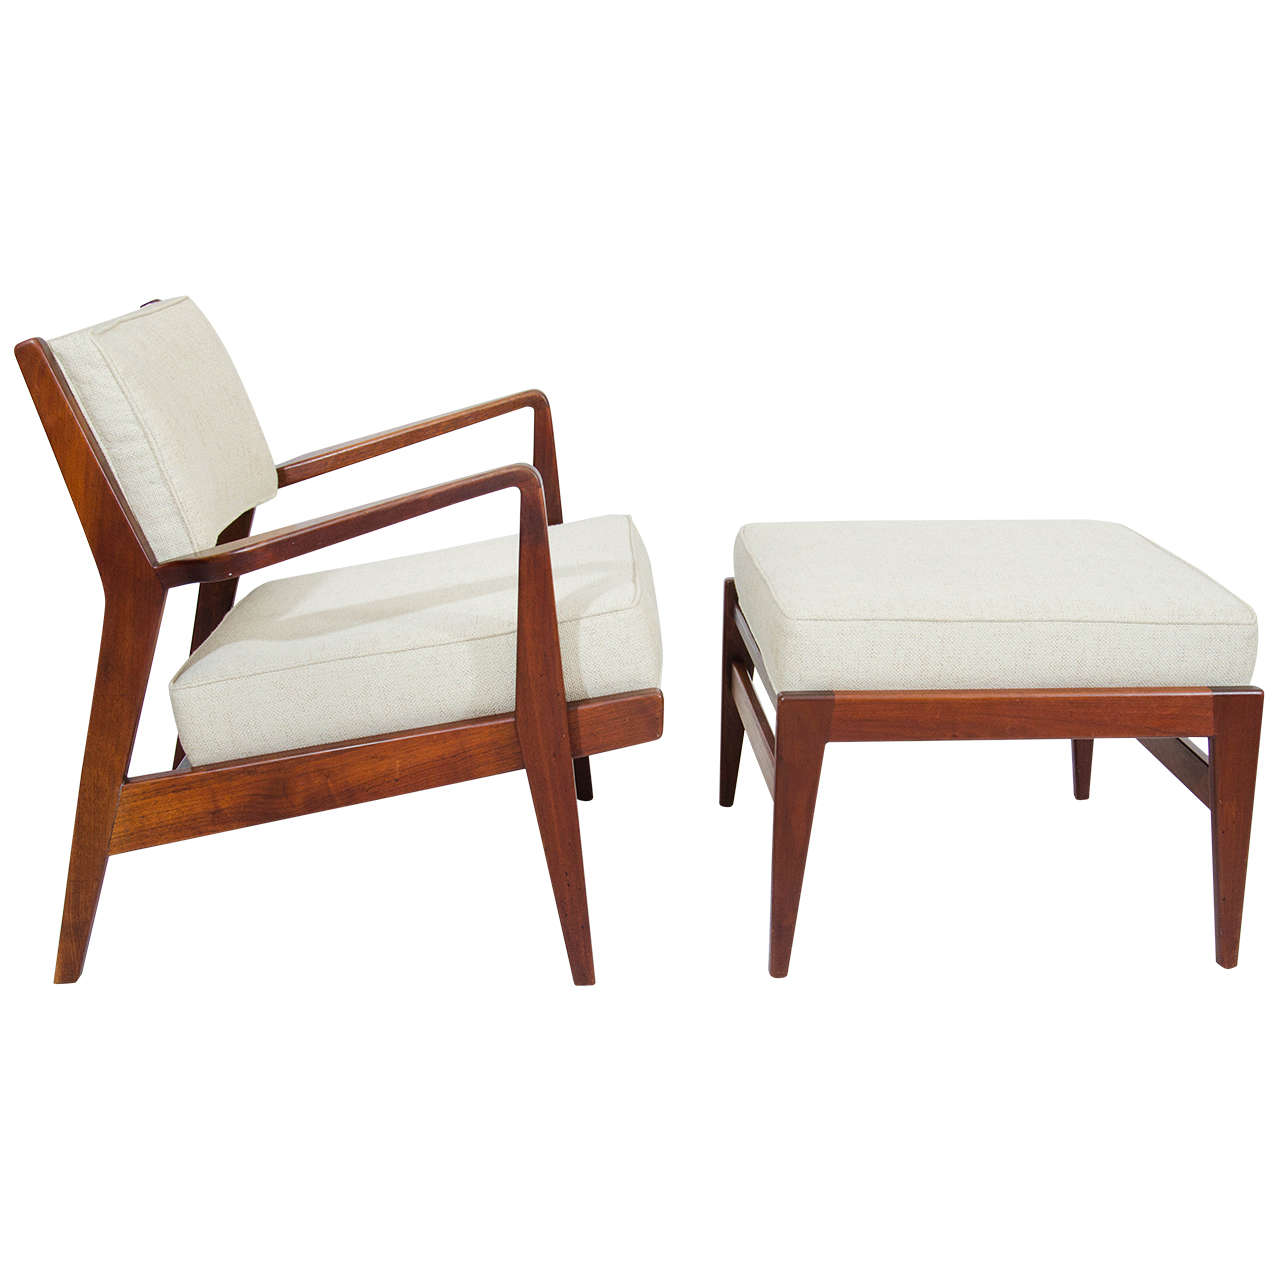 Jens Risom Lounge Chair and Ottoman at 1stdibs